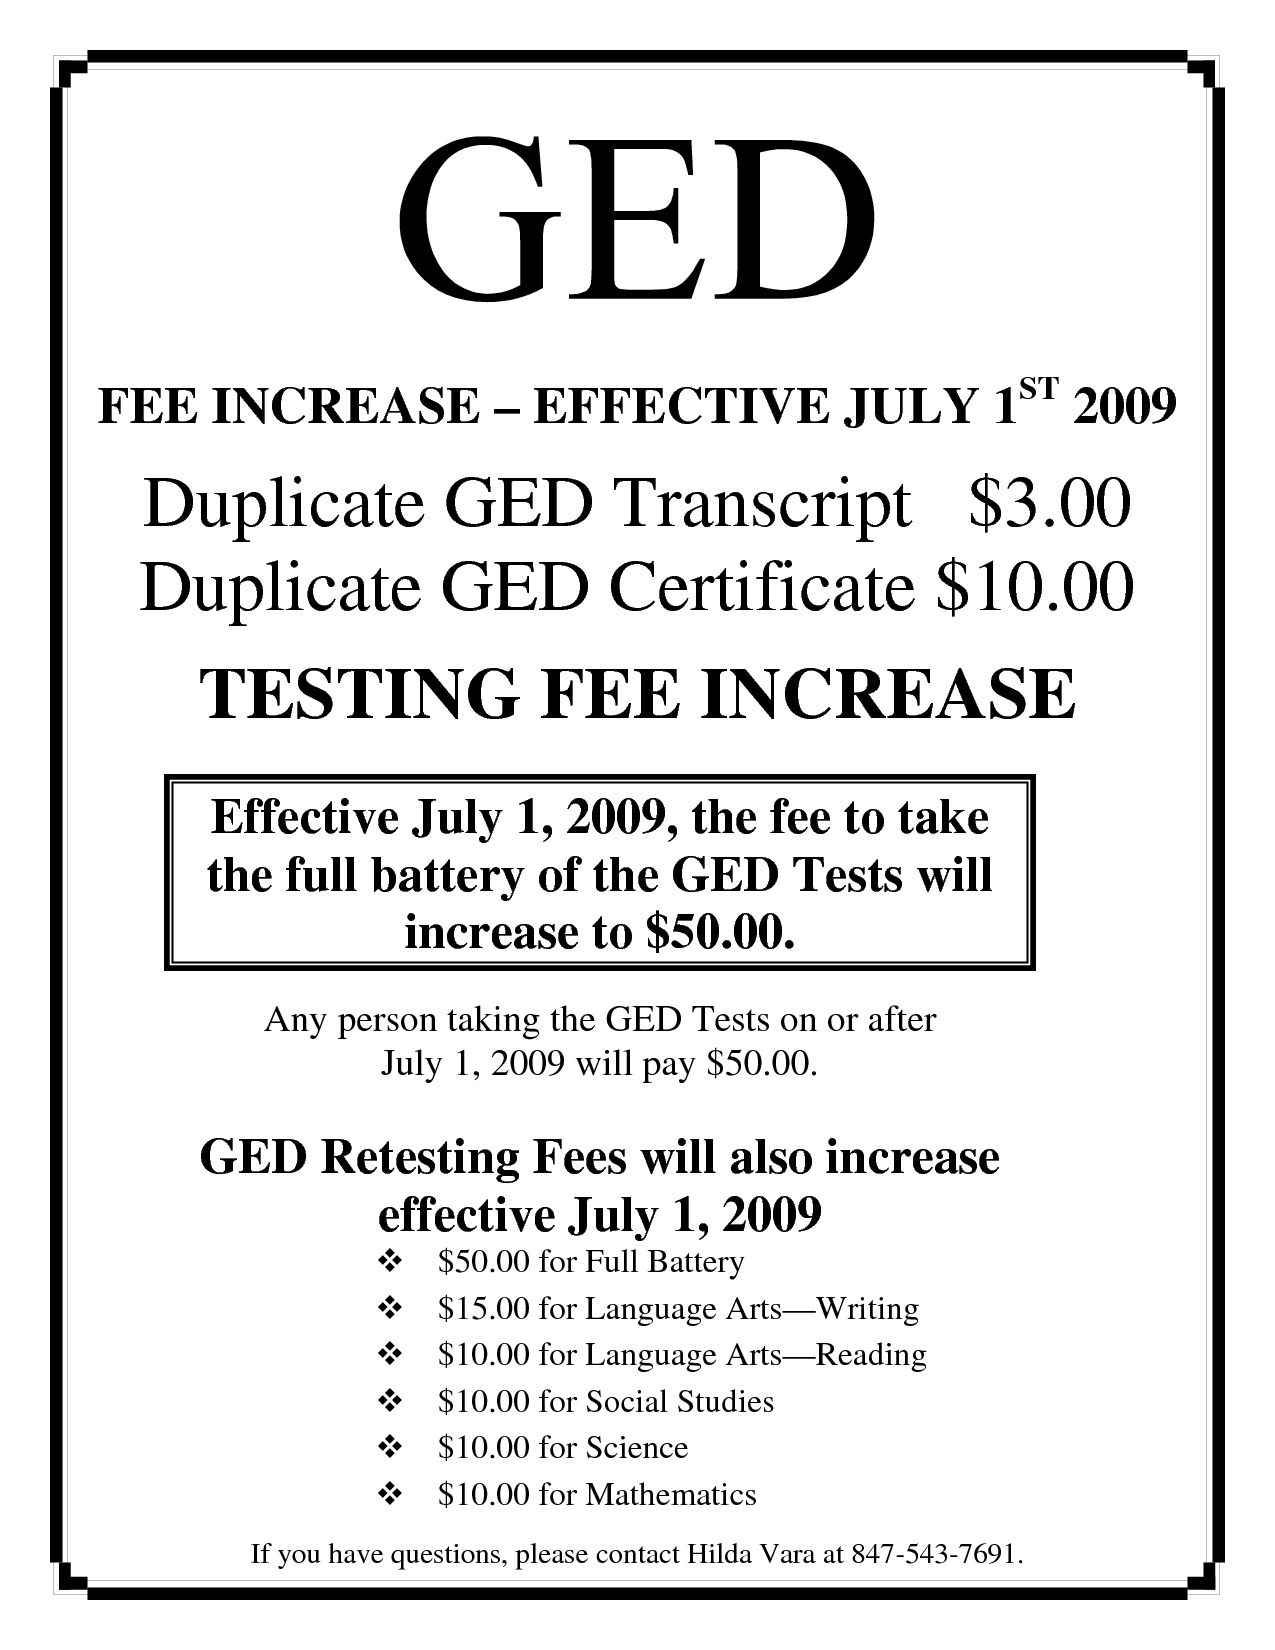 The Excellent Ged Certificate Template Download Printable Receipt Template Inten In 2020 Certificate Templates Receipt Template Certificate Of Participation Template